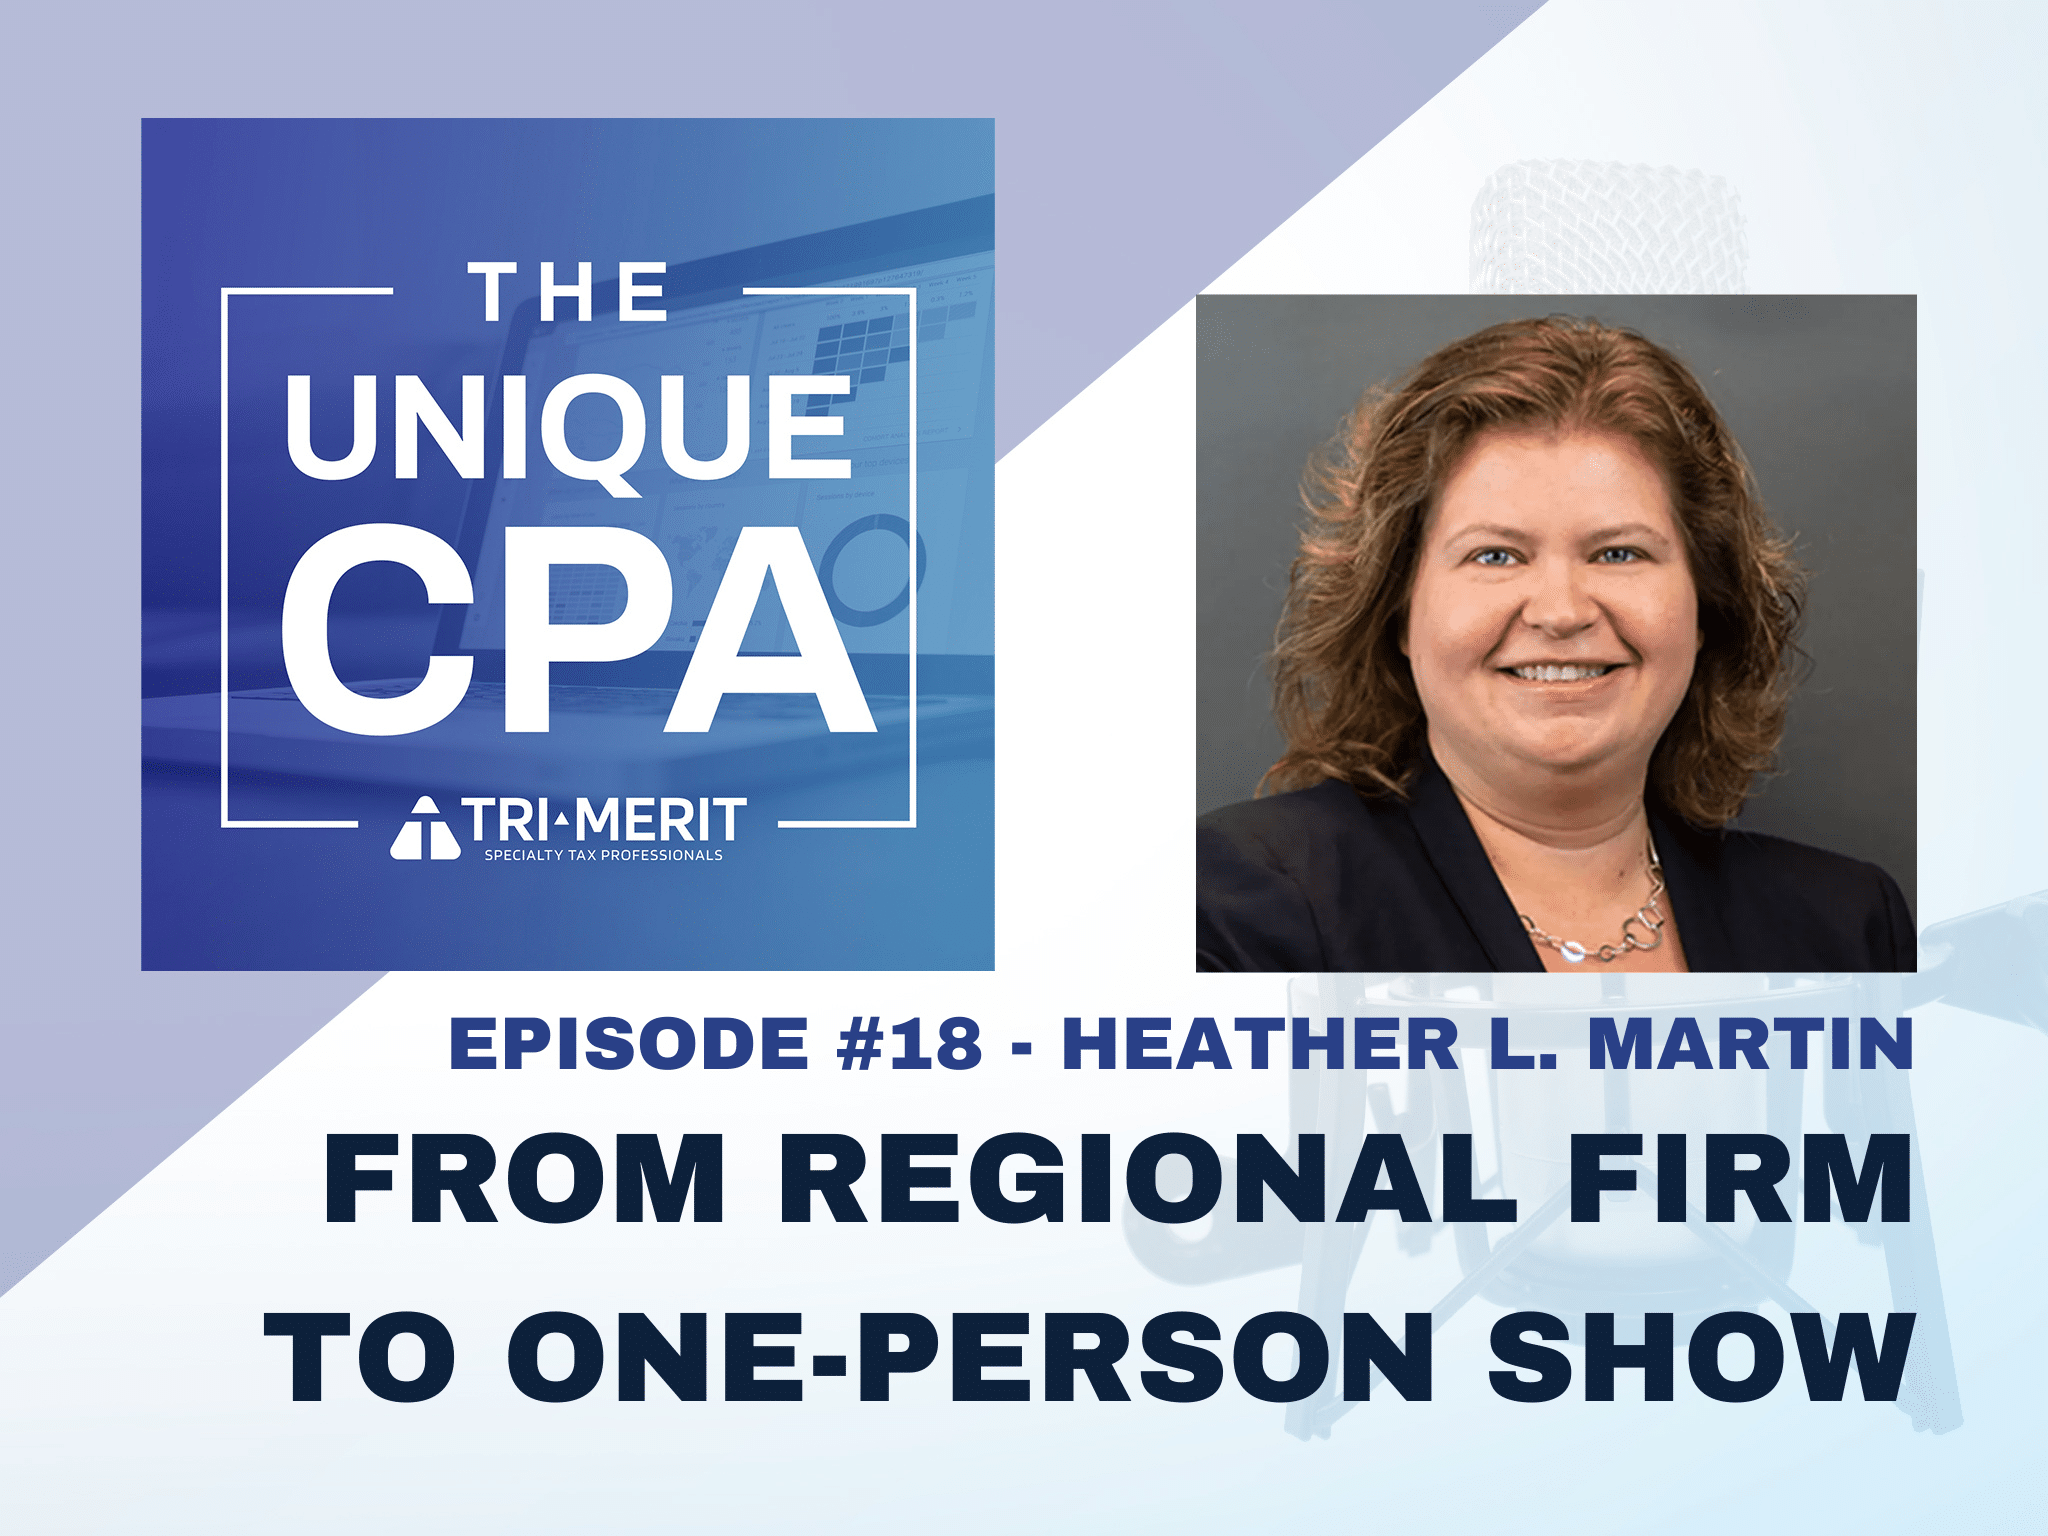 The Unique CPA Feature Image Ep 18 Heather Martin - From Regional Firm to One-Person Show - Tri-Merit